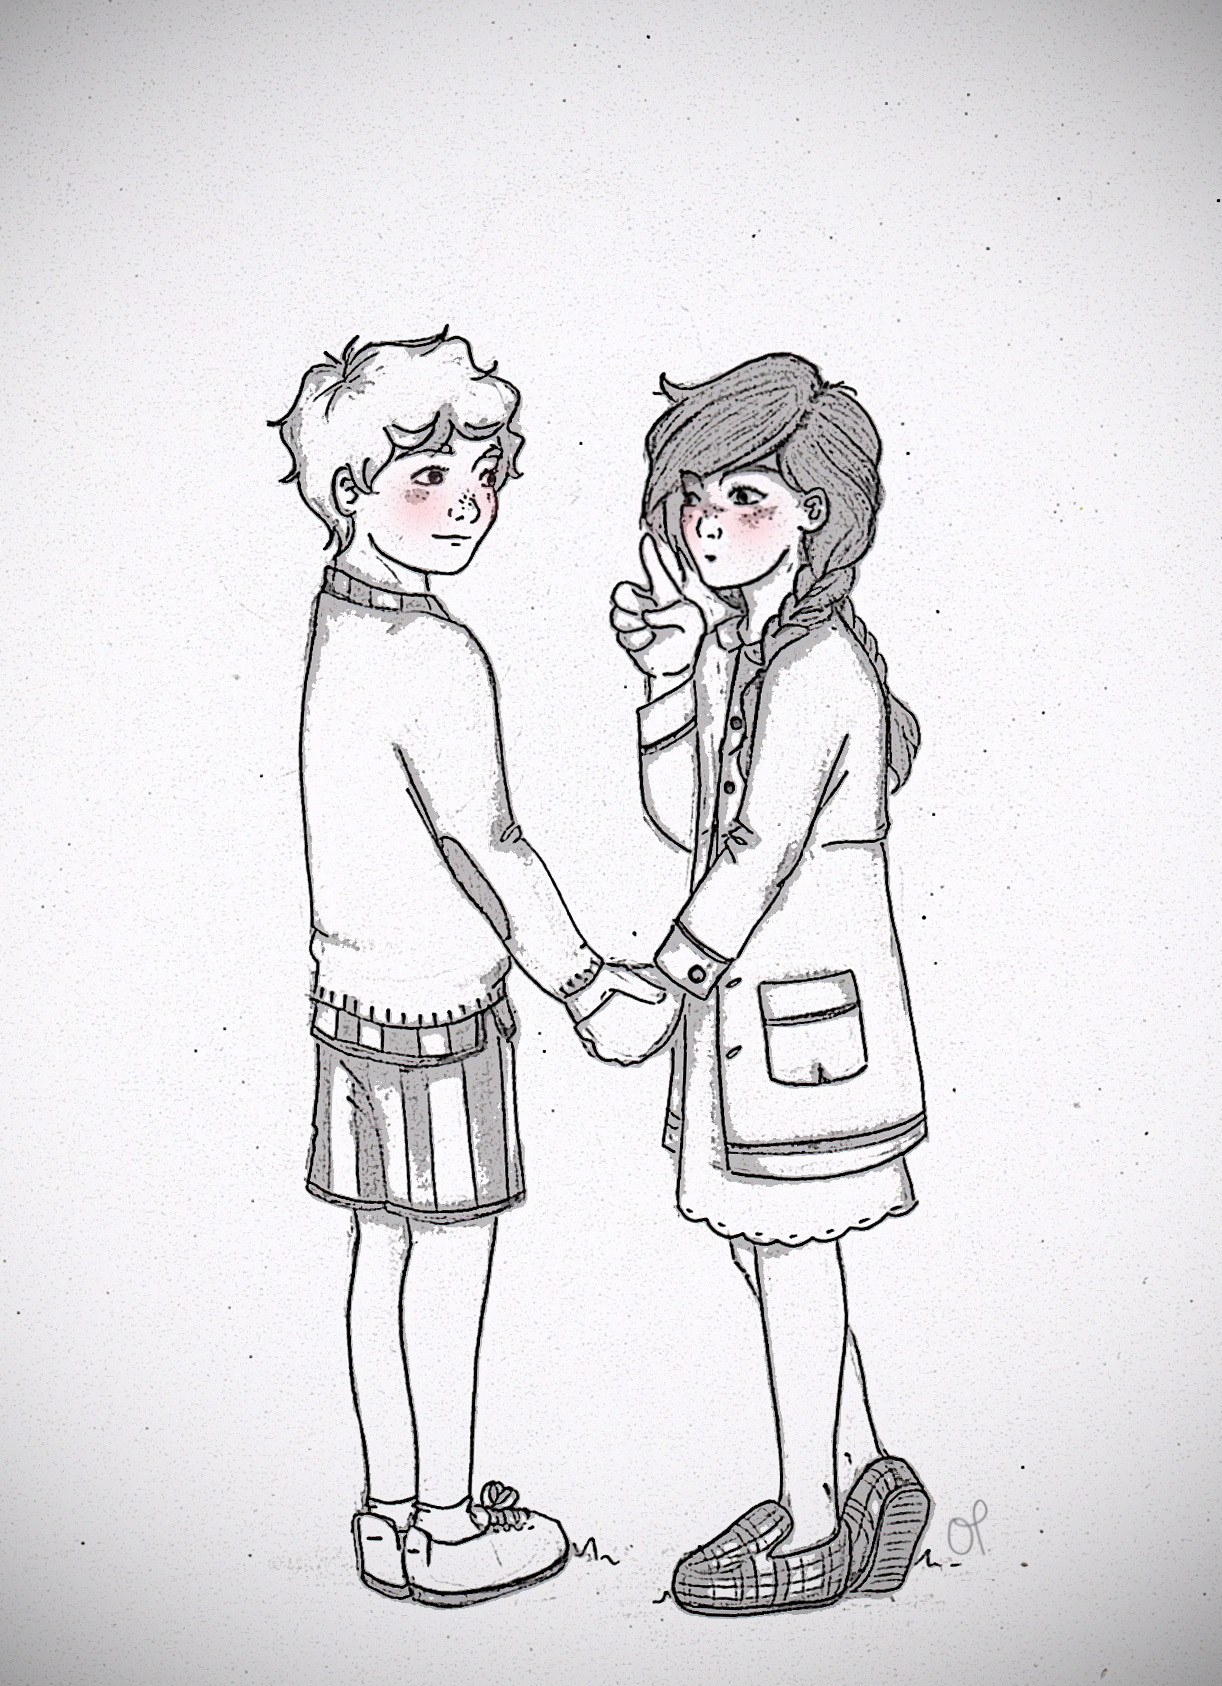 1222x1686 Girl And Boy Sketch Tumblr Boy And Girl Sketch Tumblr Girl And Boy